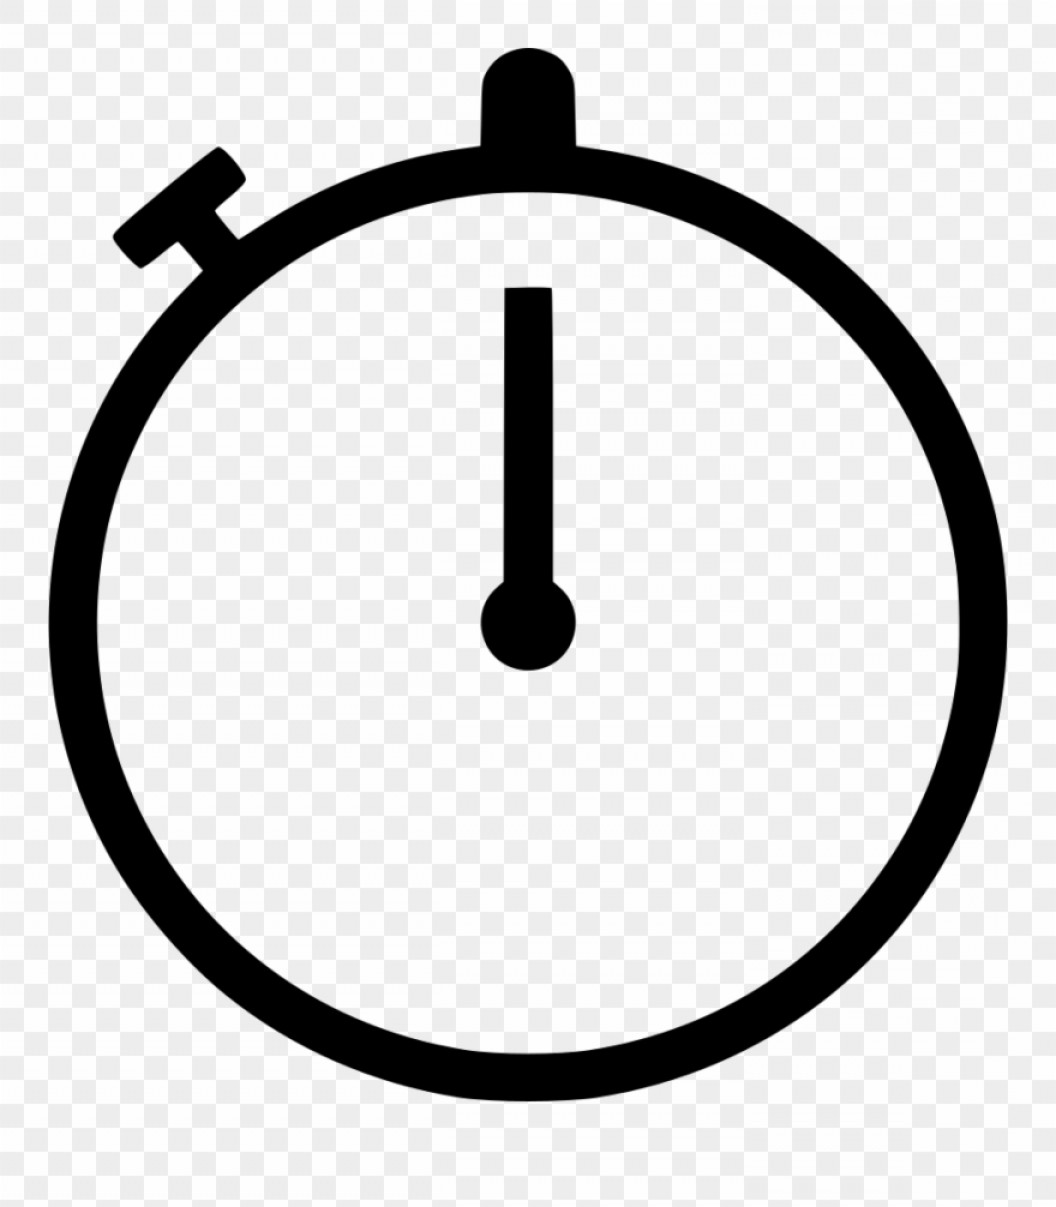 Stop Watch Vector Ai File: Hjtwboclipart Freeuse Stopwatch Clipart Frames Illustrations Stop Watch